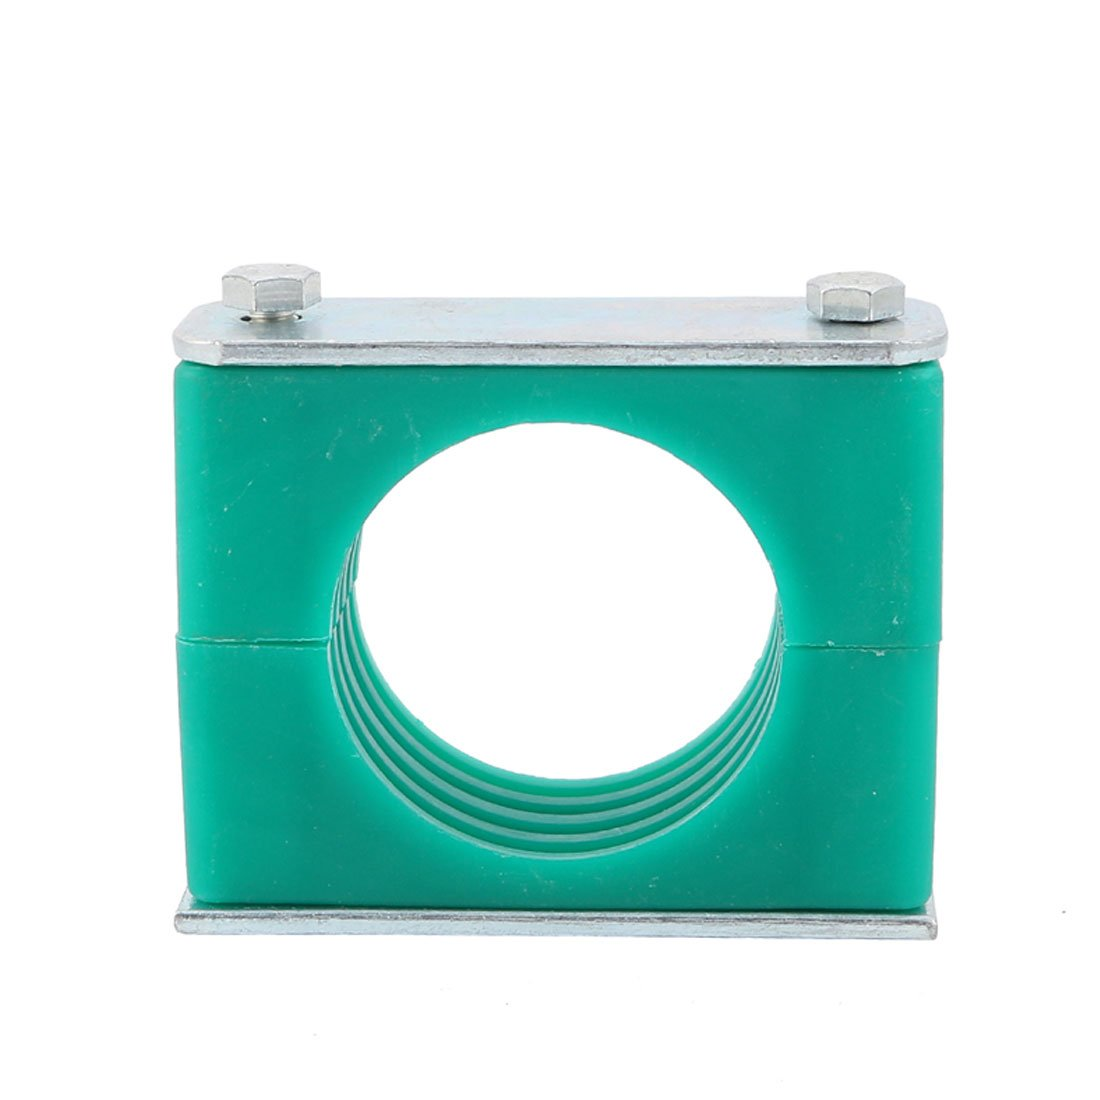 uxcell 50mm Dia Polypropylene Heavy Series Pipe Hose Tube Clamp w Aluminum Cushion